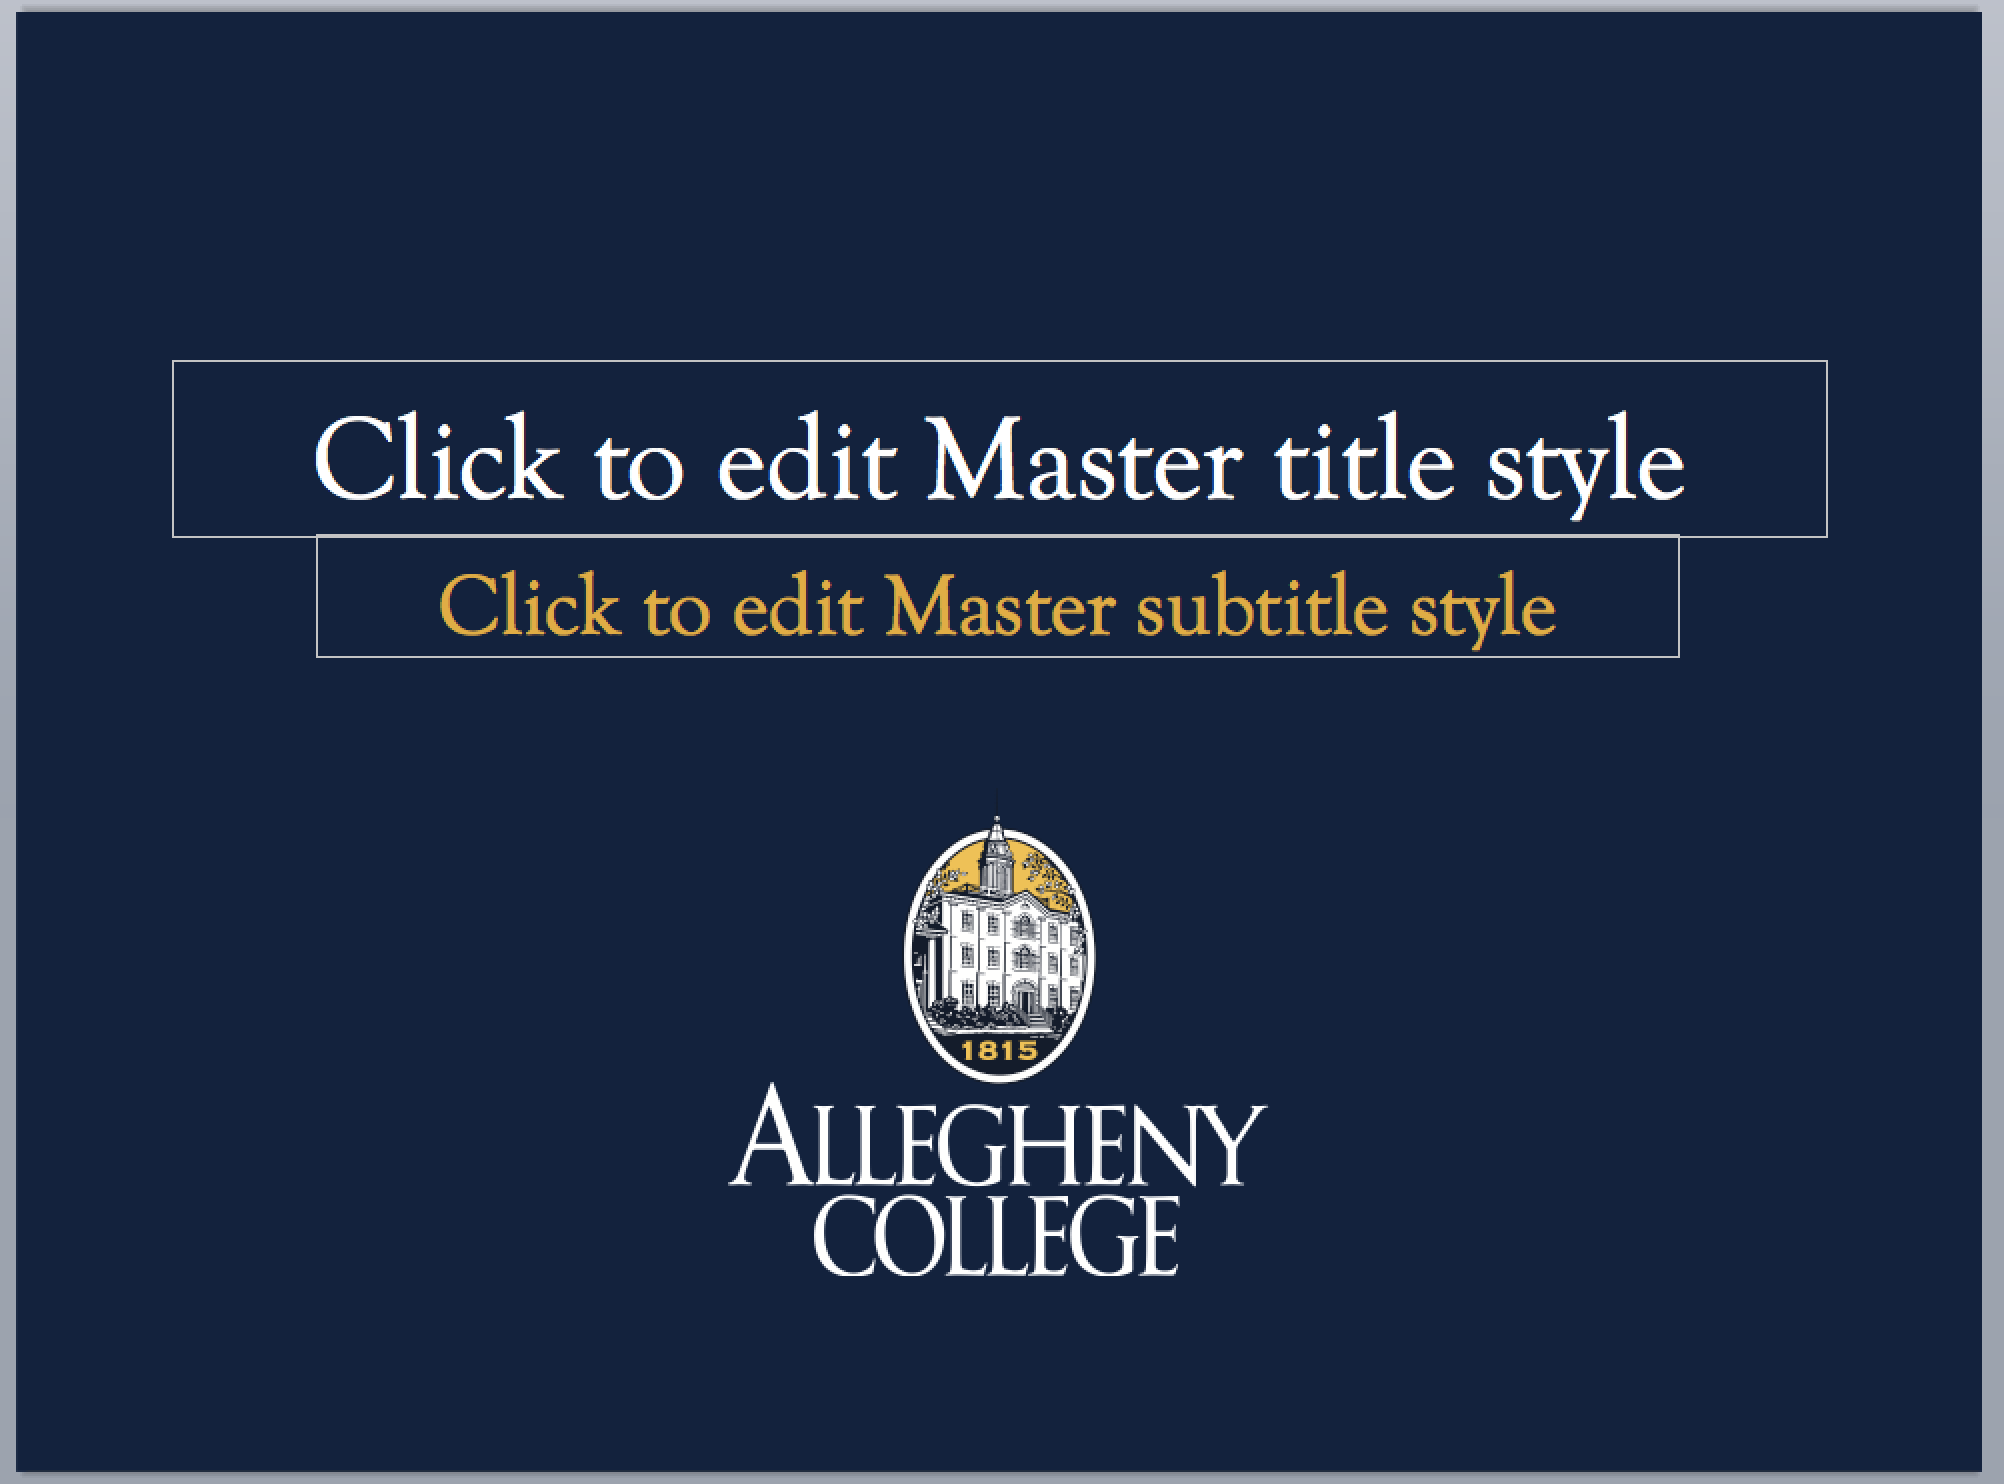 templates college relations allegheny college meadville pa